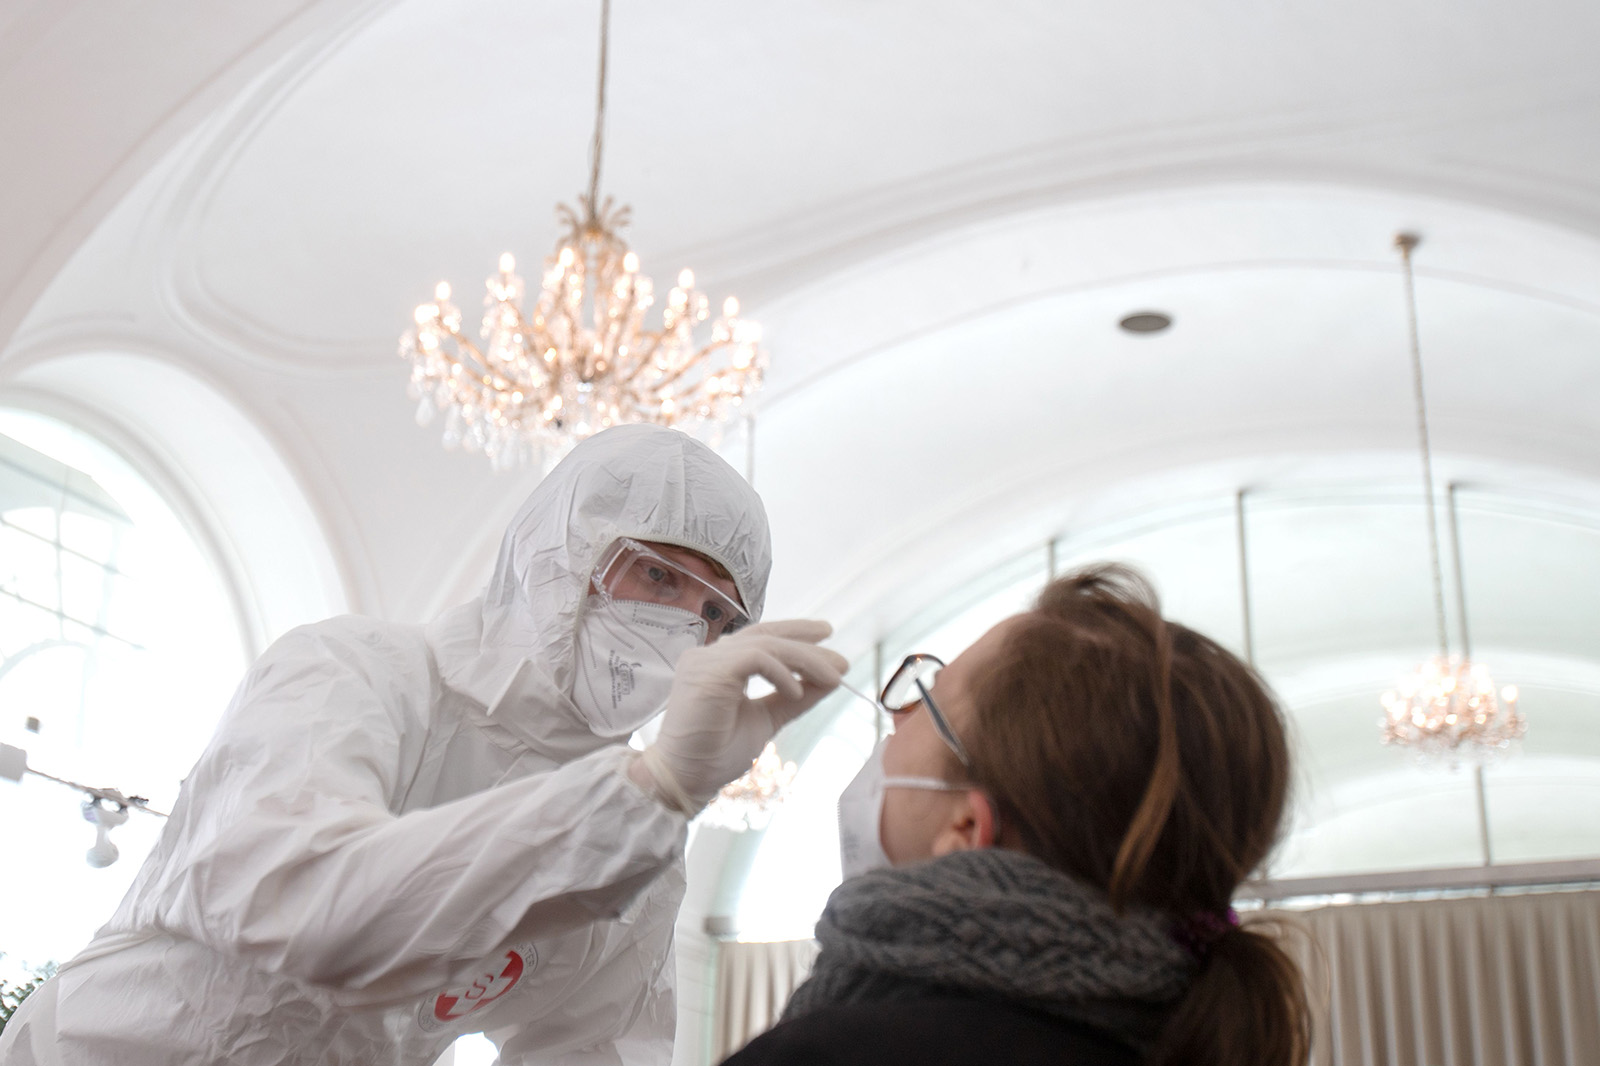 A health worker takes a coronavirus antigen rapid test swab at the new coronavirus test center in the Orangery of the Schoenbrunn Palace on February 4, as Vienna expands its capacities for the rapid antigen test.